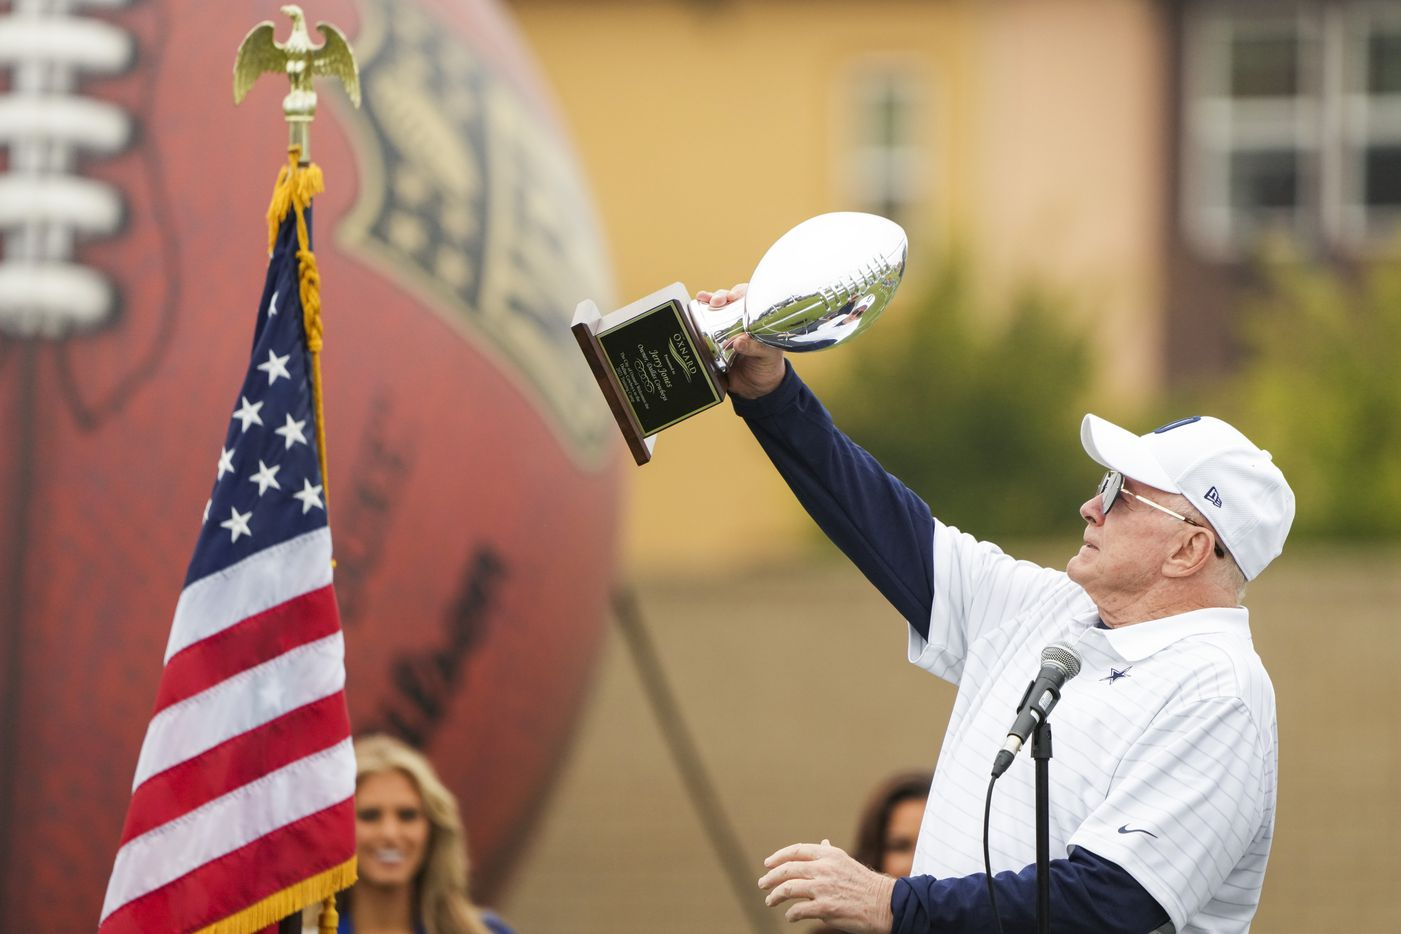 Dallas Cowboys owner and general manager Jerry Jones lifts a trophy presented to him by Oxnard Mayor John Zaragoza during opening ceremonies before a practice at training camp on Saturday, July 24, 2021, in Oxnard, Calif.